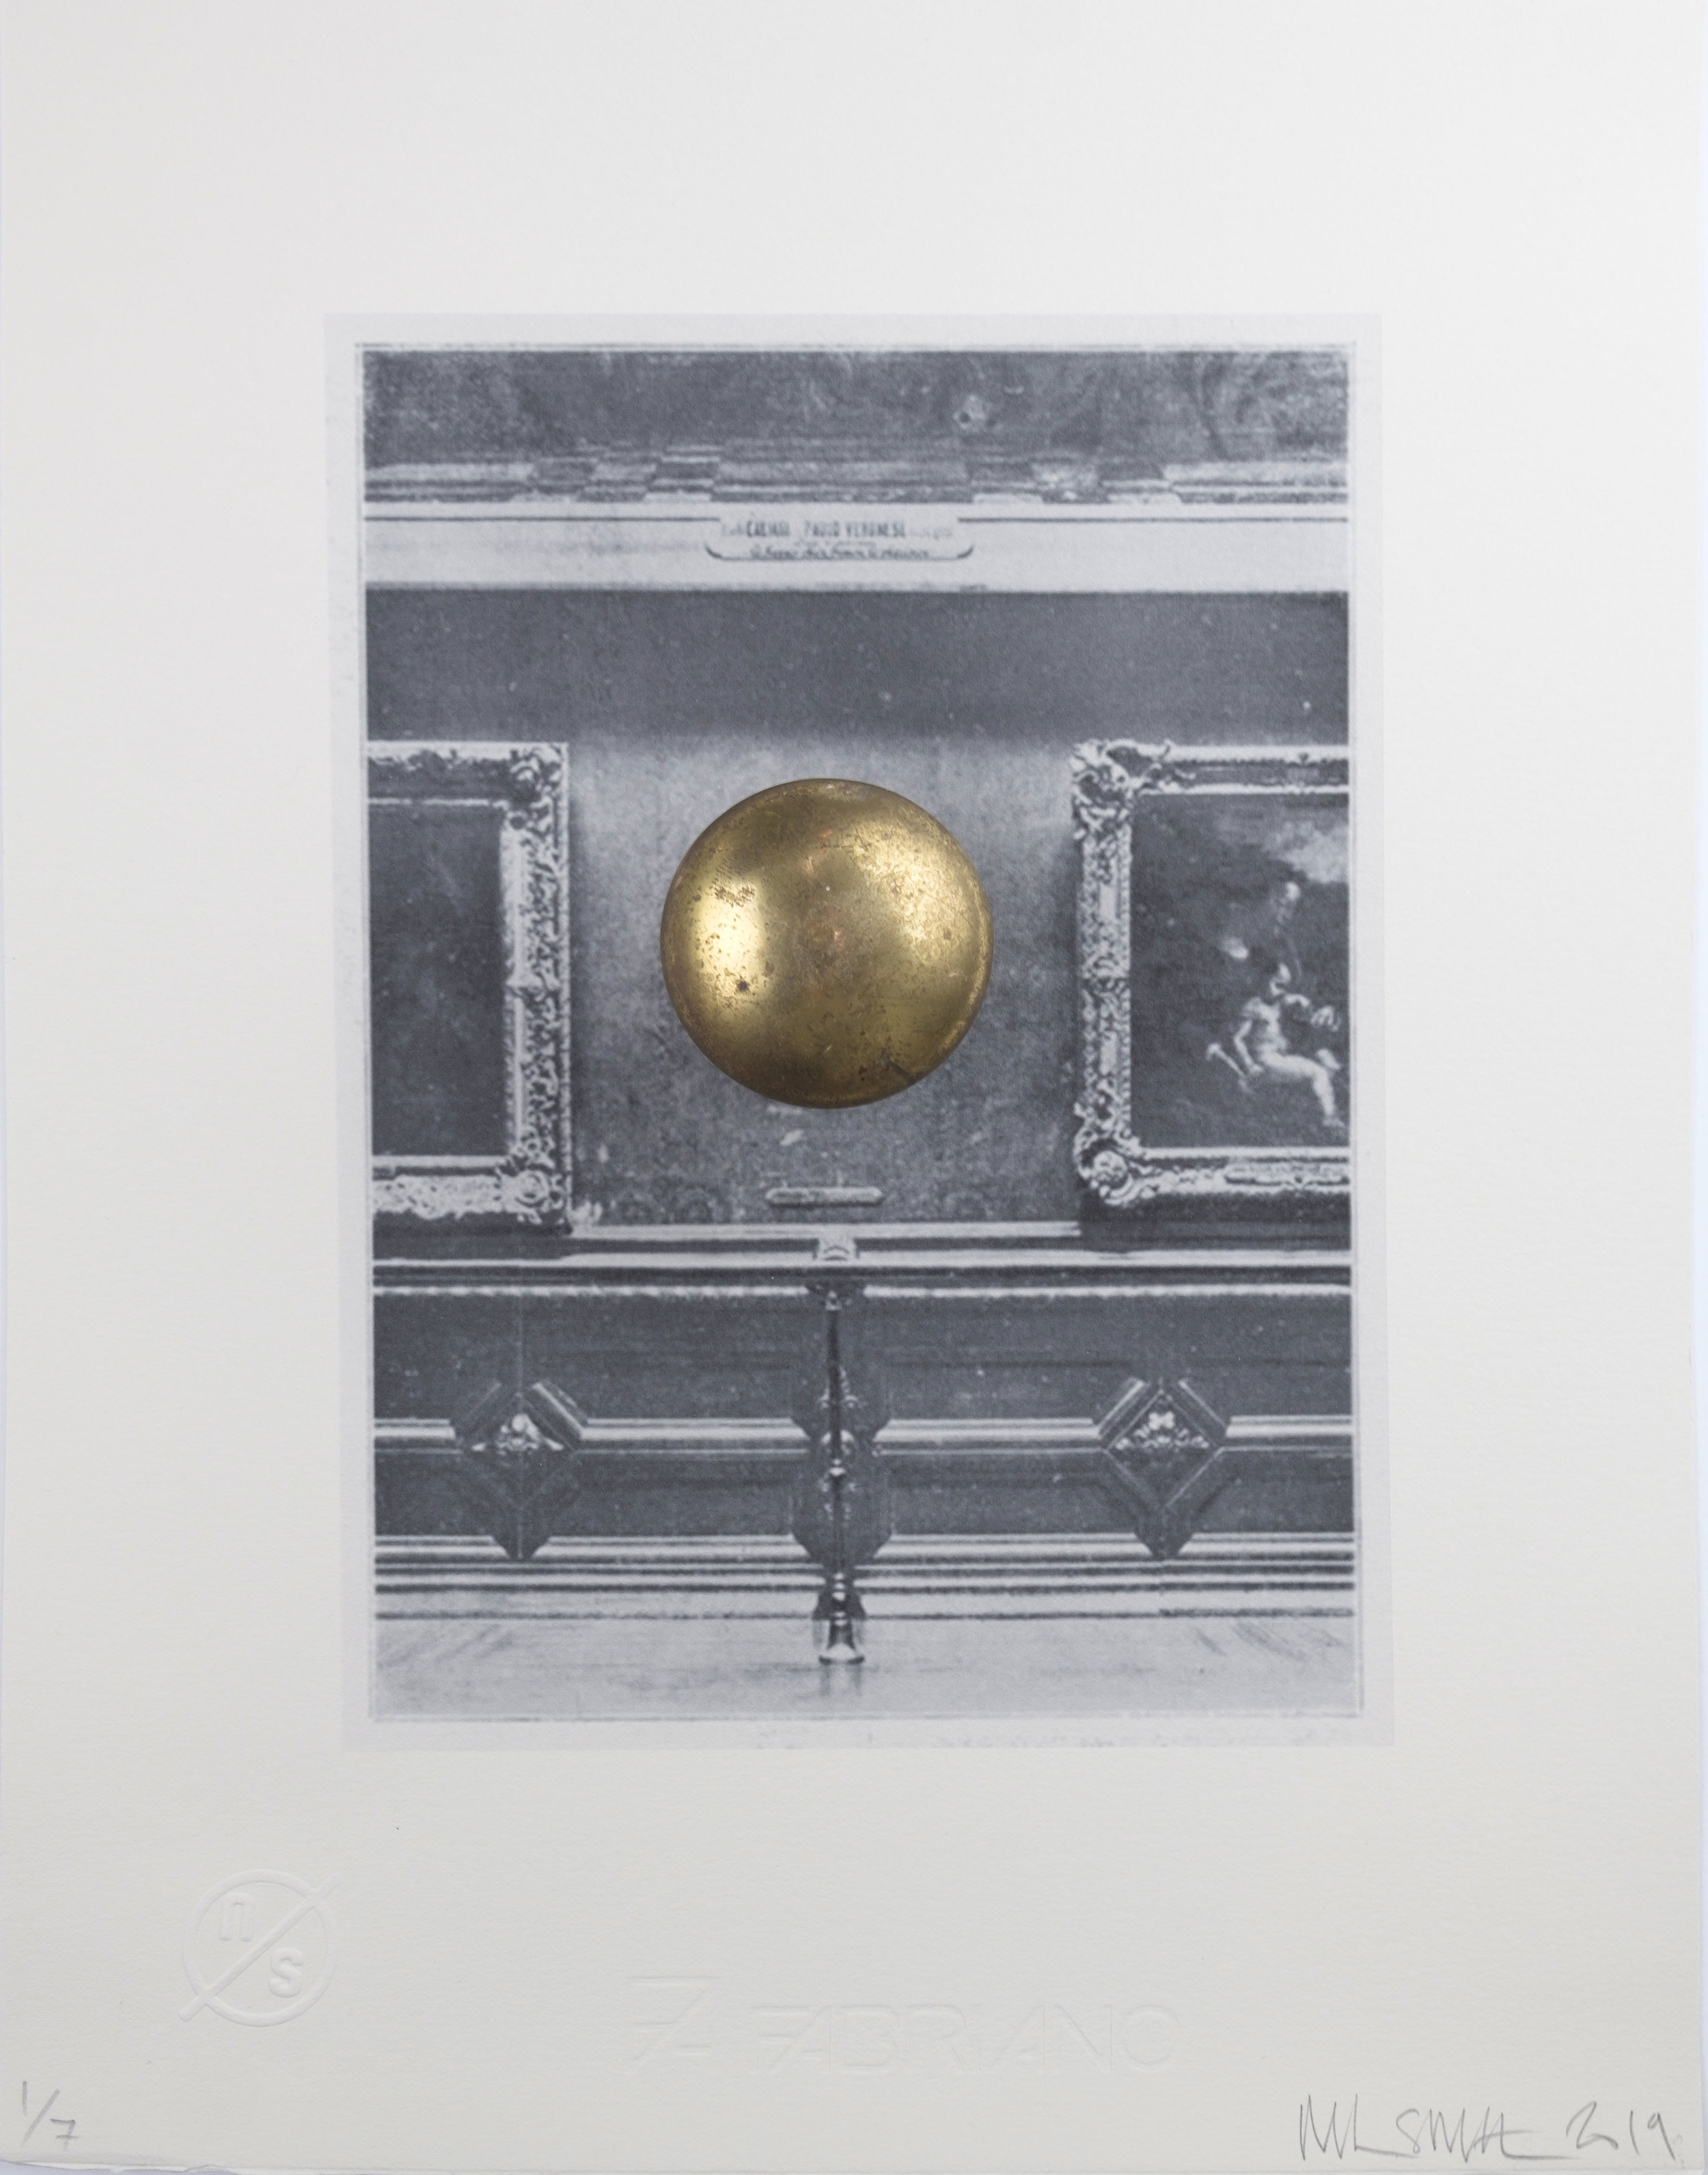 Louvre Wall with Door Knob (Mona Lisa)